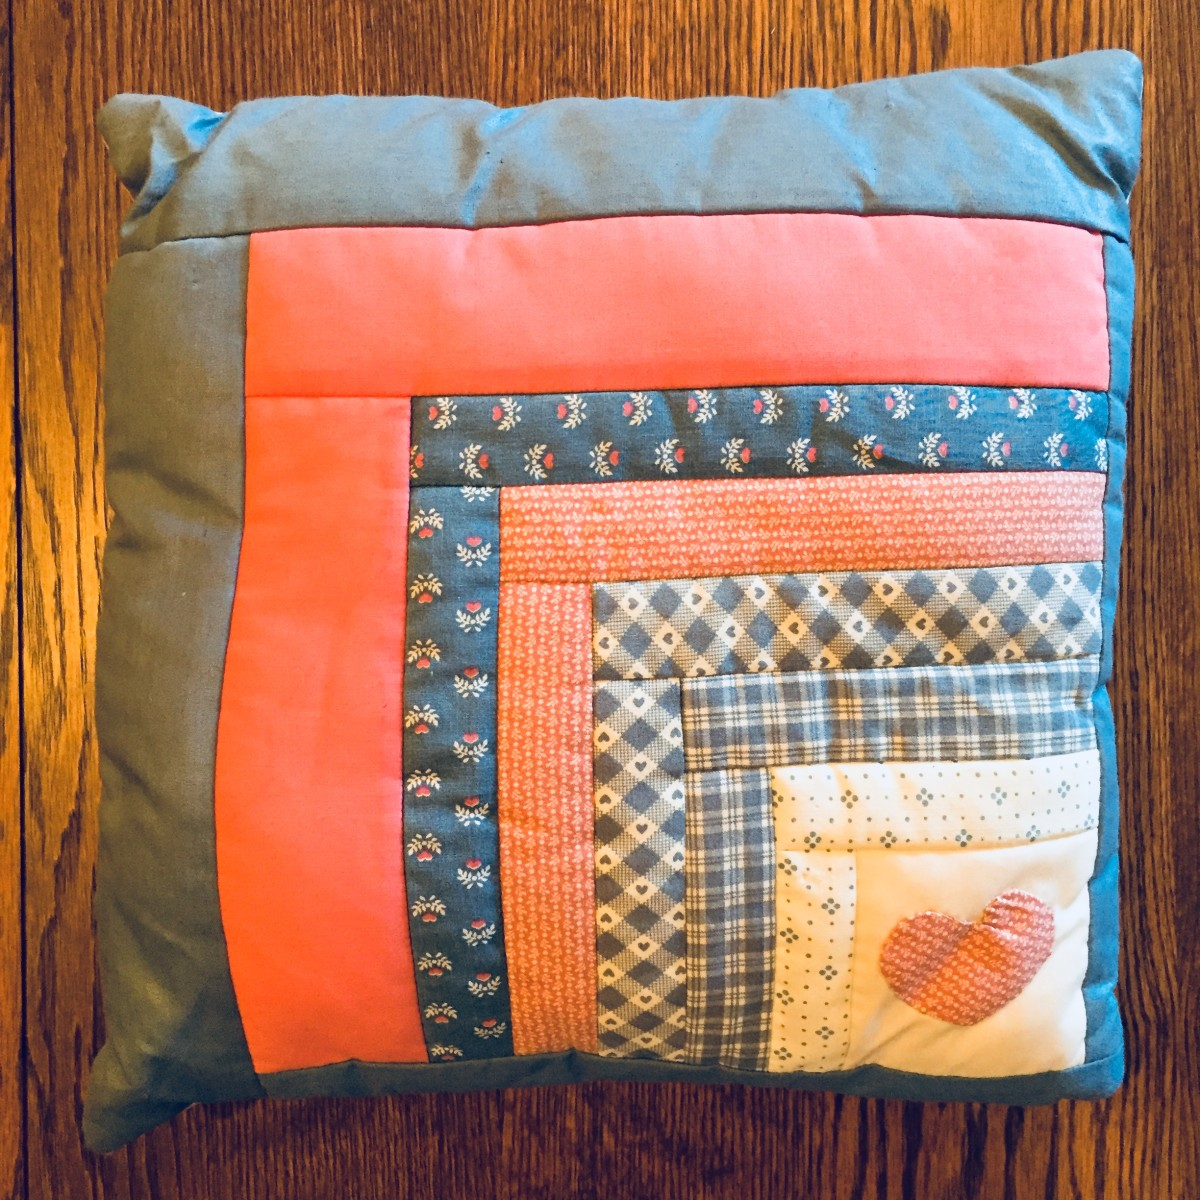 "This pillow is 12"" x 12"" - yours can be larger. My ""logs"" range from 7/8"" to 2 1/4"" wide but all of your strips could be the same width. My starting square is 3"" x 3"" placed in a corner. Your square could be larger, or placed in the center, or both!."